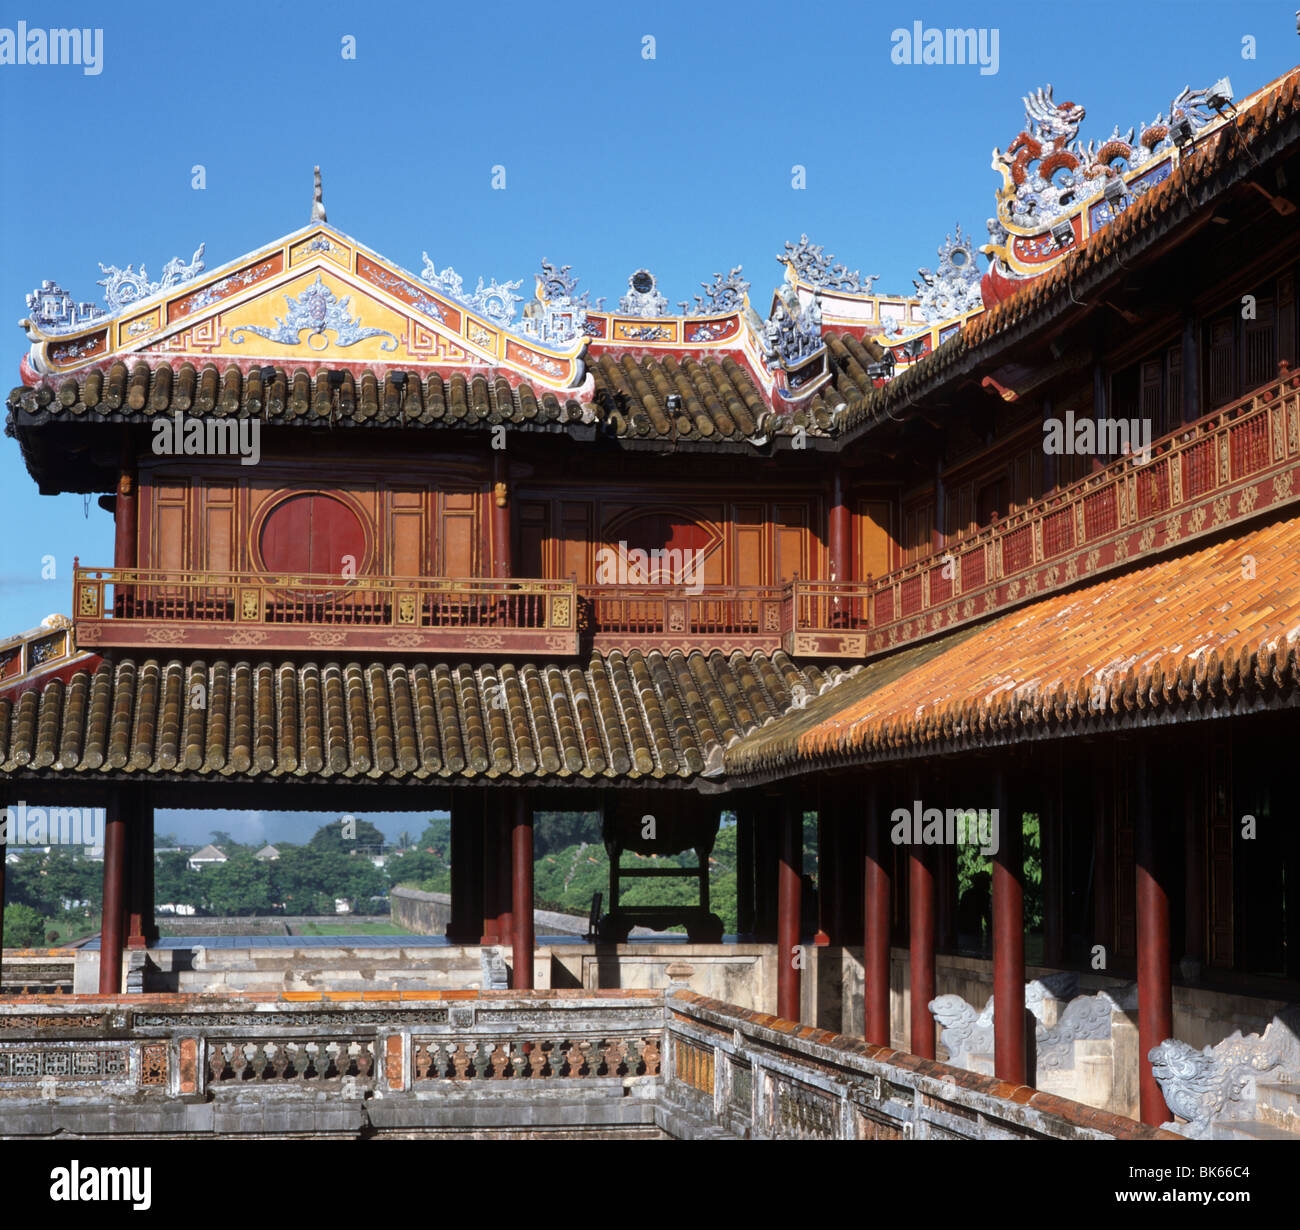 The Ngo Mon Gate (Moon Gate), the Citadel, Hue, UNESCO World Heritage Site, Vietnam, Indochina, Southeast Asia, - Stock Image